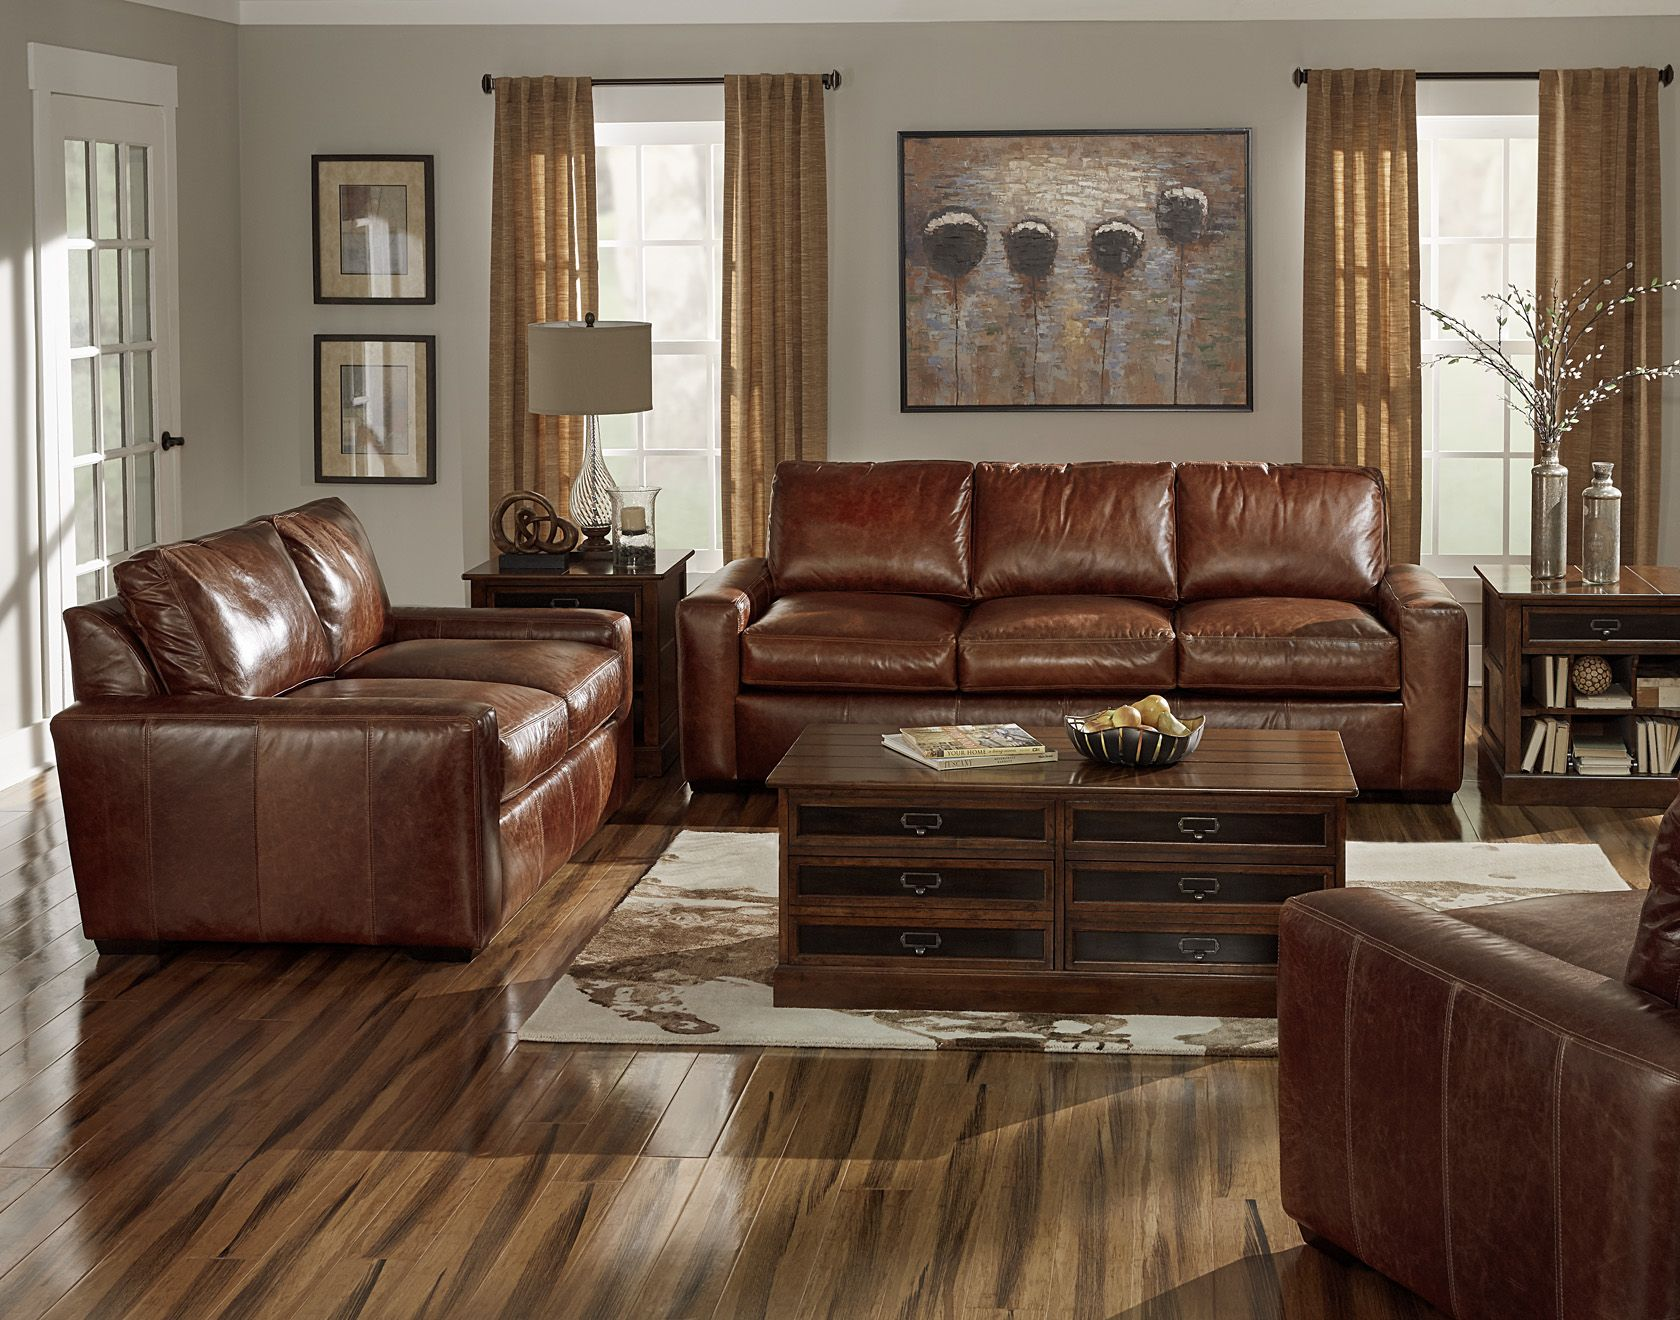 Wide arms, deep seat, beautiful leather. This sofa set ...